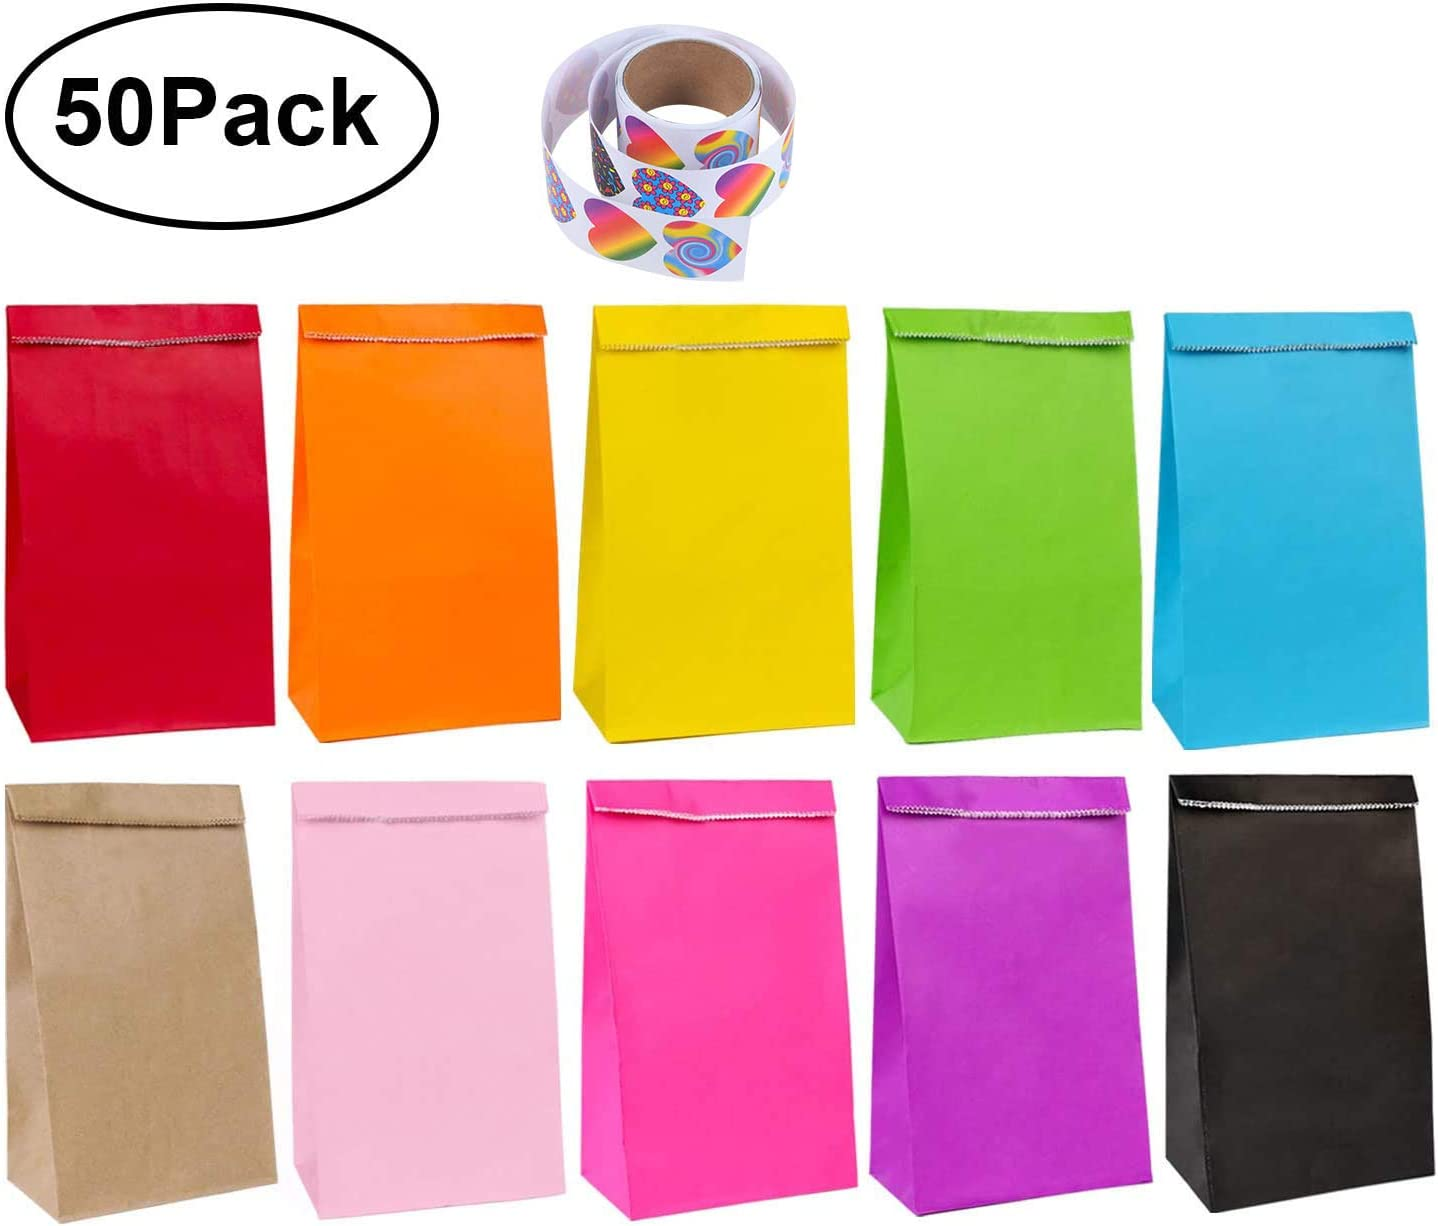 Celebrations Kraft Bags for Kids Party Birthday 50 Pcs Rainbow Gift and Sweet Bags Halloween Baby Shower Christmas flintronic Paper Bags